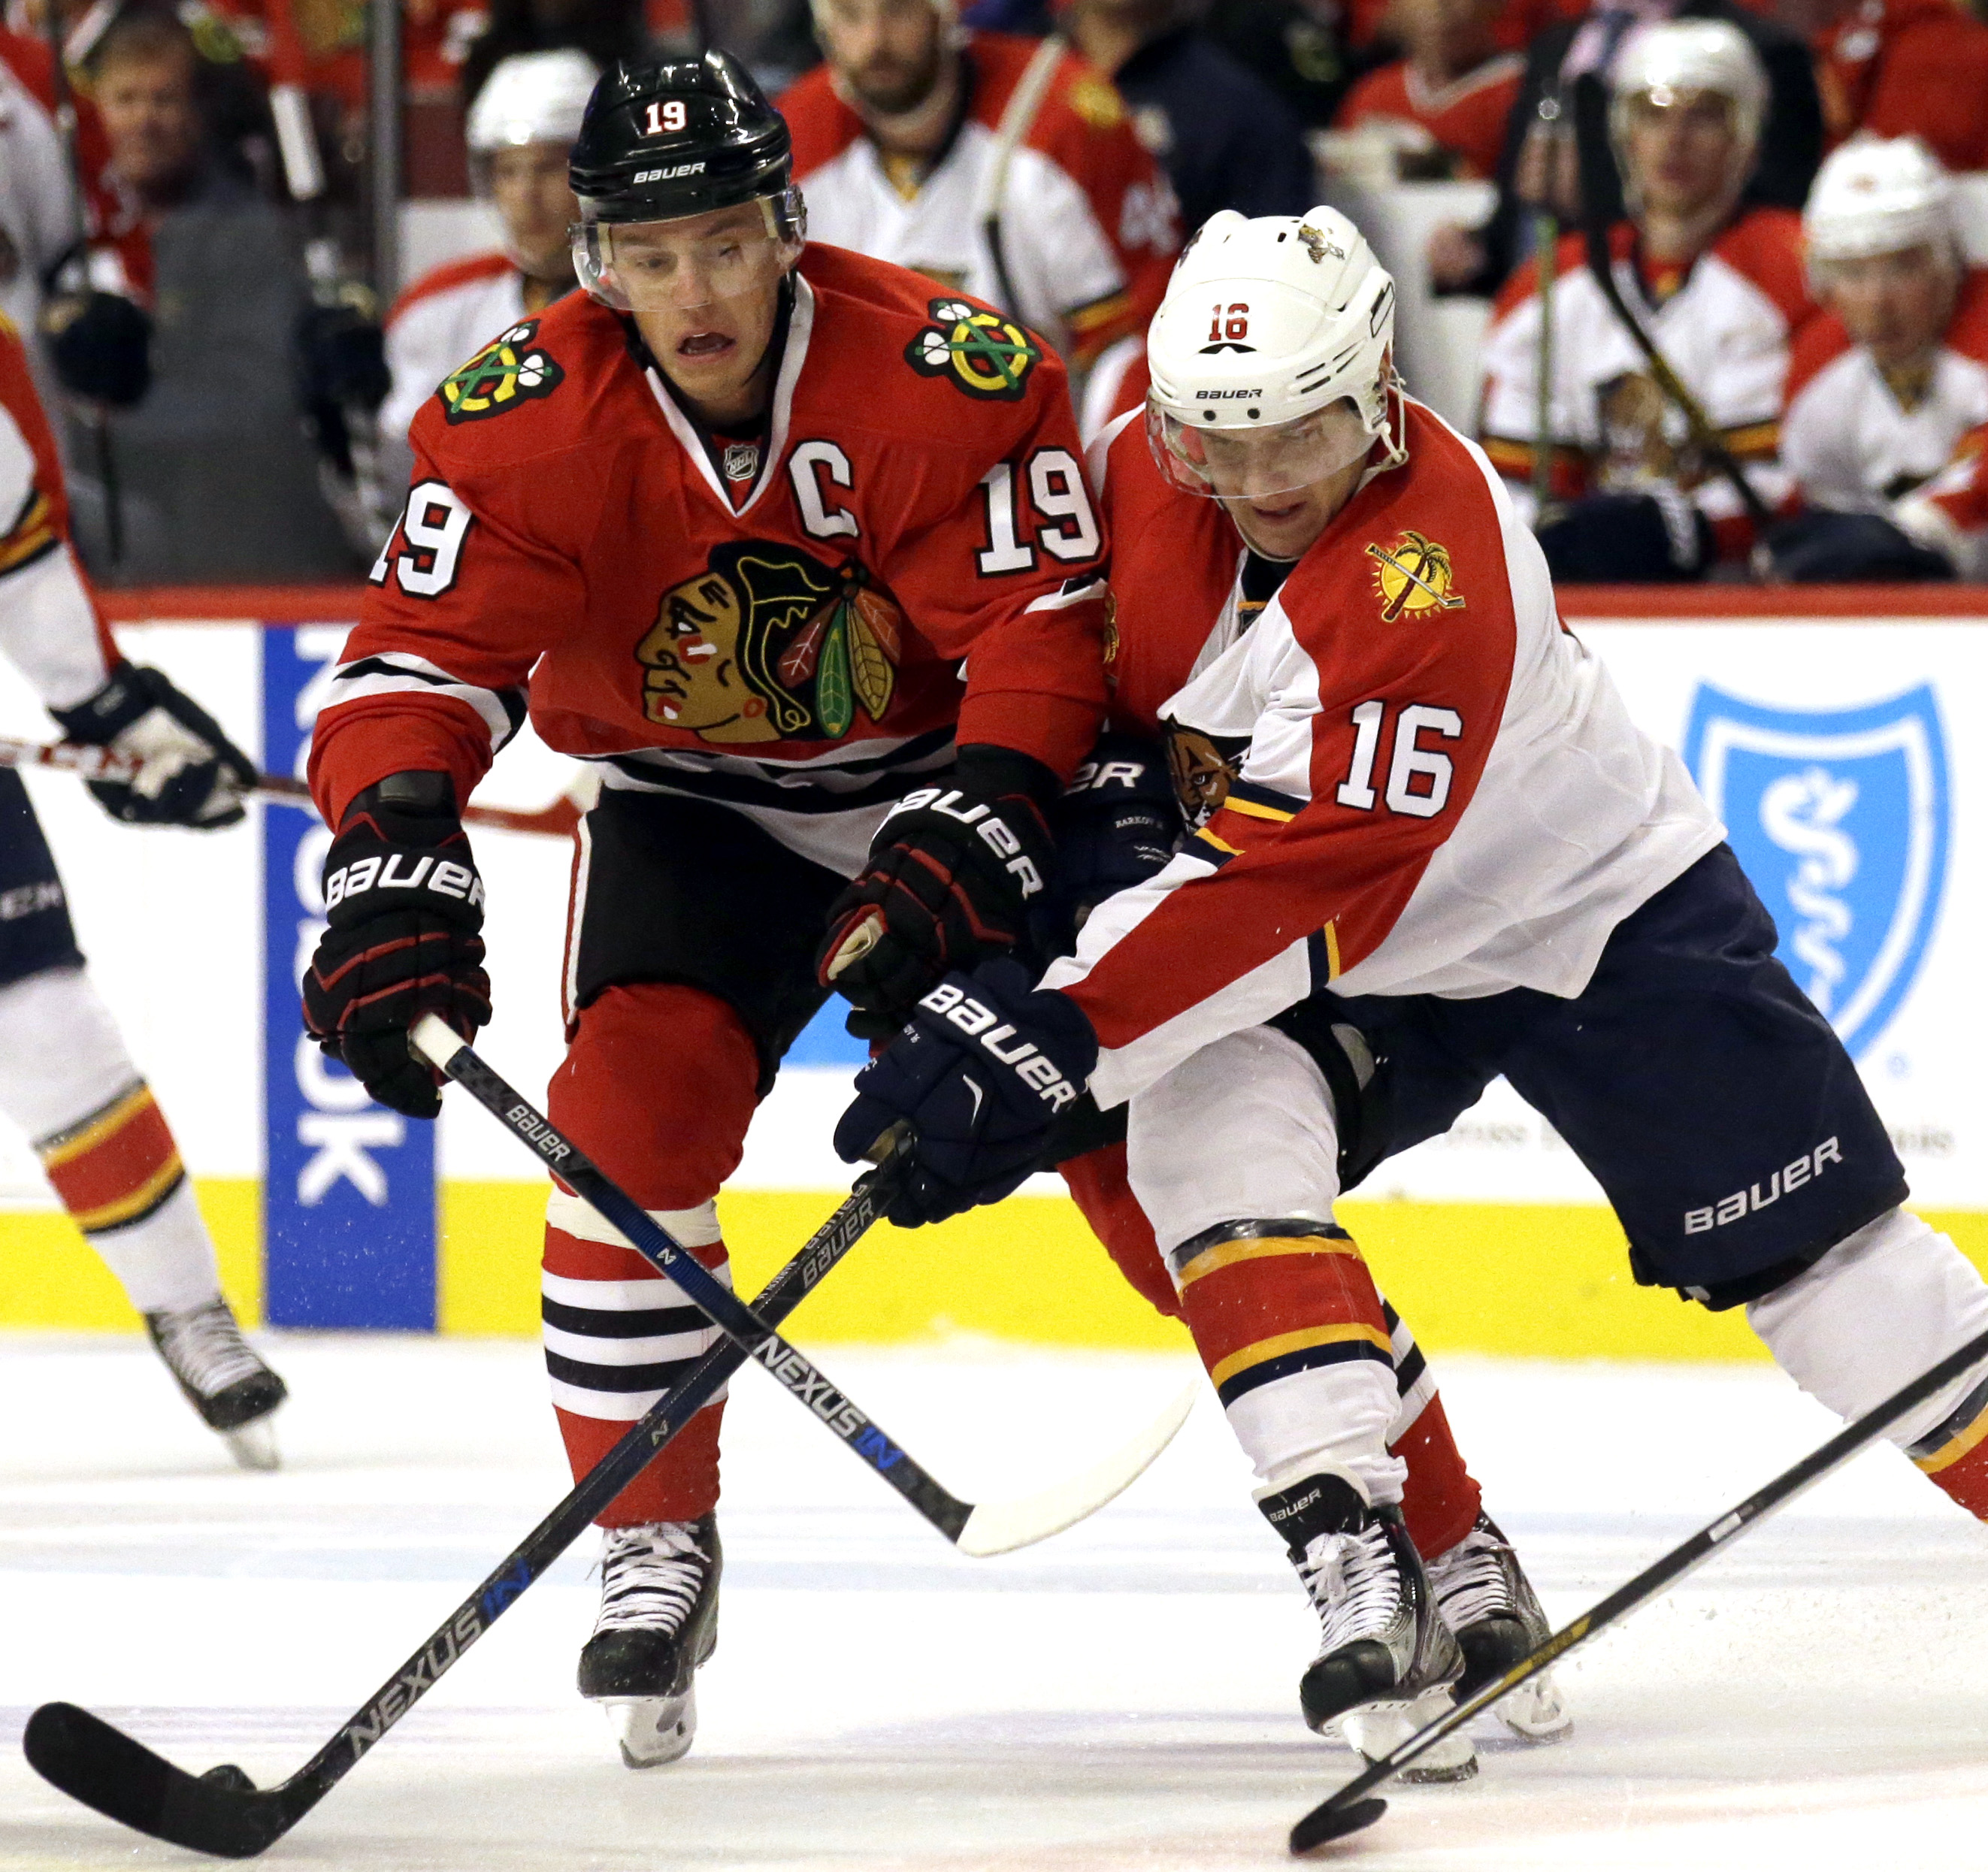 Florida Panthers center Aleksander Barkov, right, battles for the puck against Chicago Blackhawks center Jonathan Toews during the first period of an NHL hockey game Thursday, Oct. 22, 2015, in Chicago. (AP Photo/Nam Y. Huh)